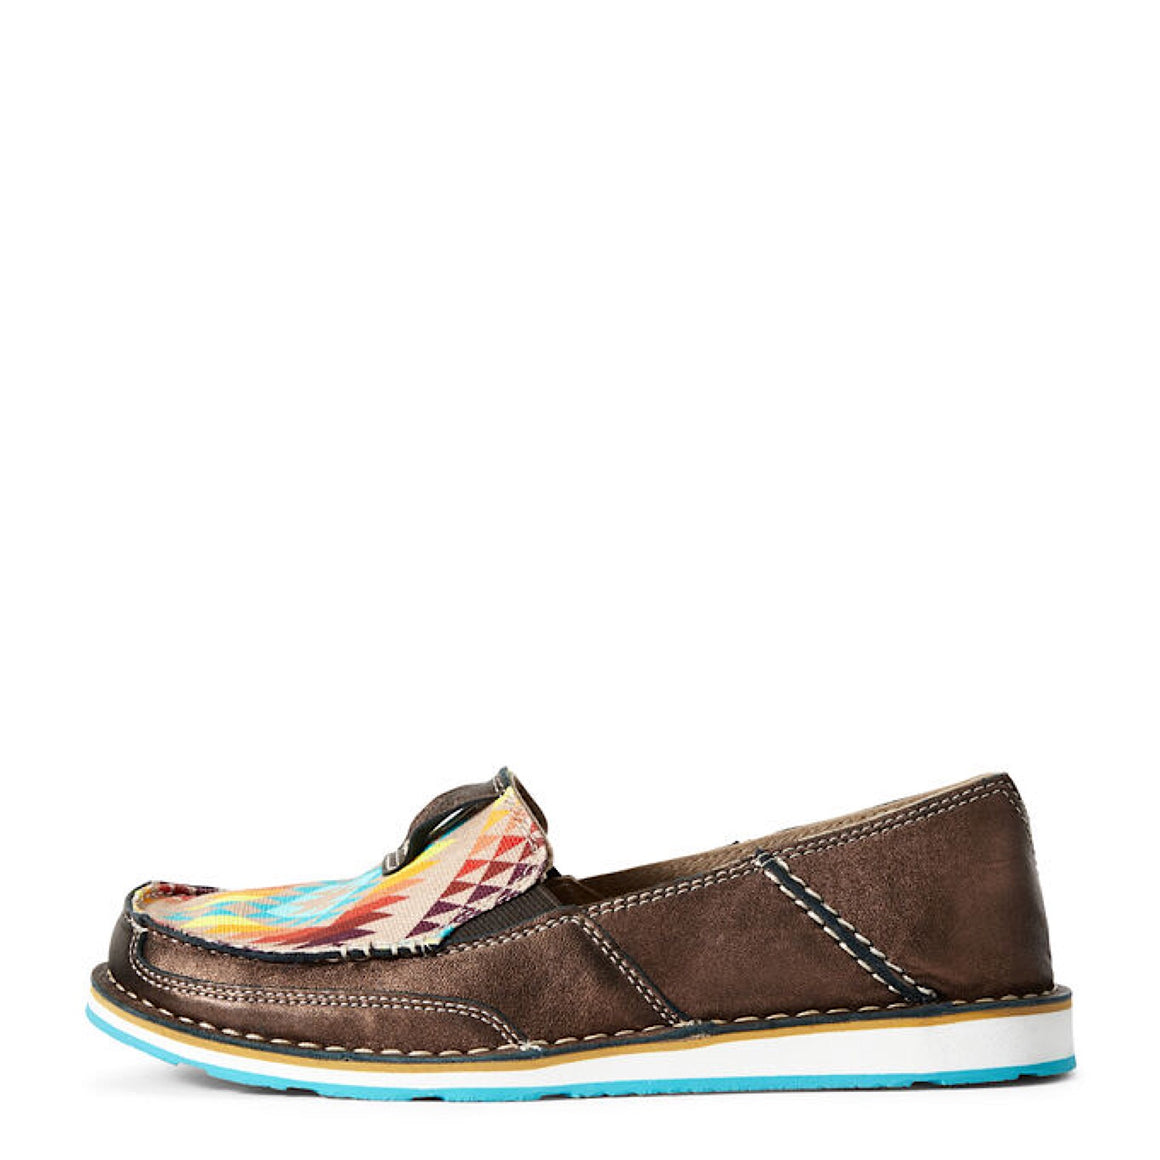 Ariat Womens Cruiser Copper Metallic/Rainbow Aztec